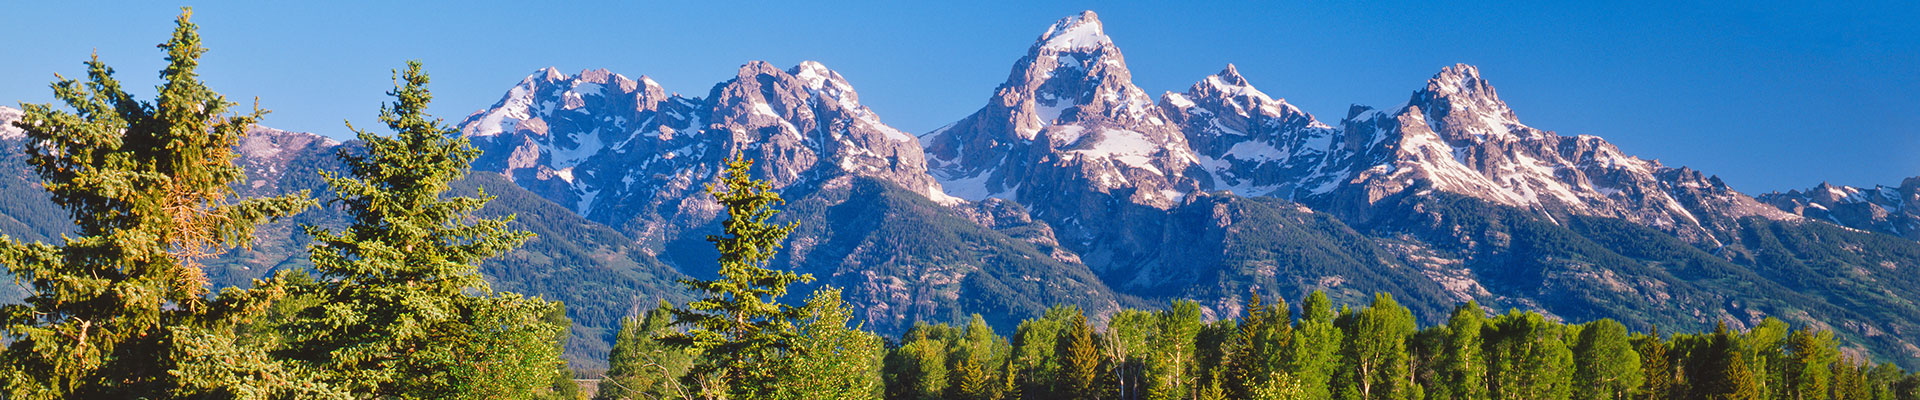 Fantasy RV Tours: 38 Day Ultimate Rockies (38UURF-082120)